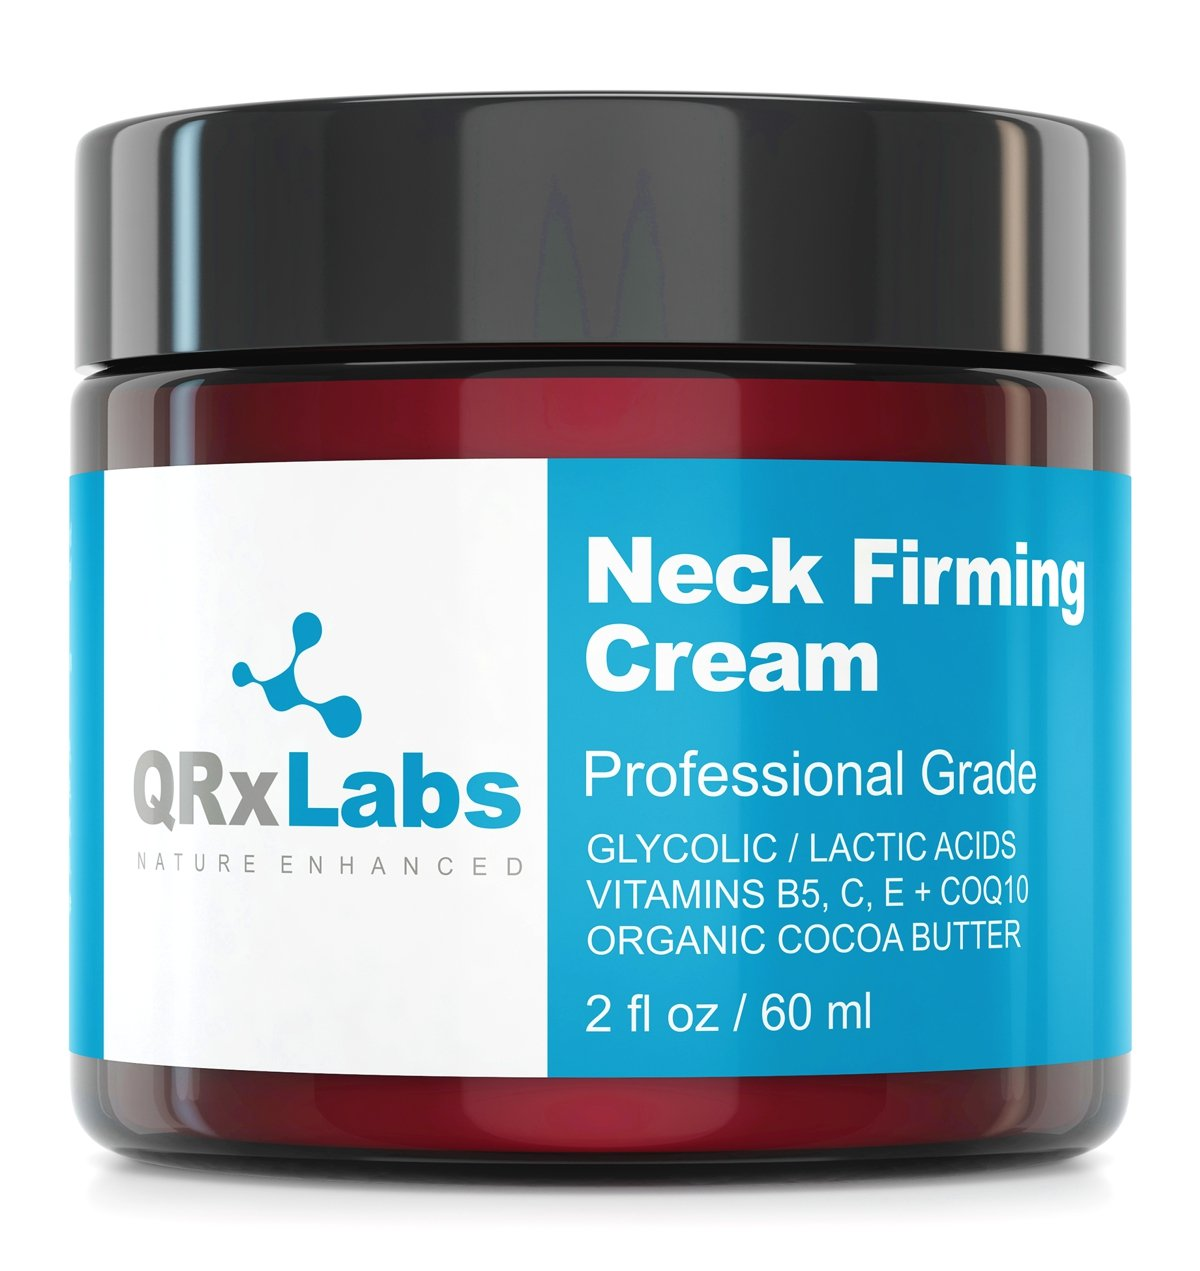 Neck Firming Cream – Tightening & Lifting Moisturizer for Loose, Wrinkled or Sagging Skin on Neck